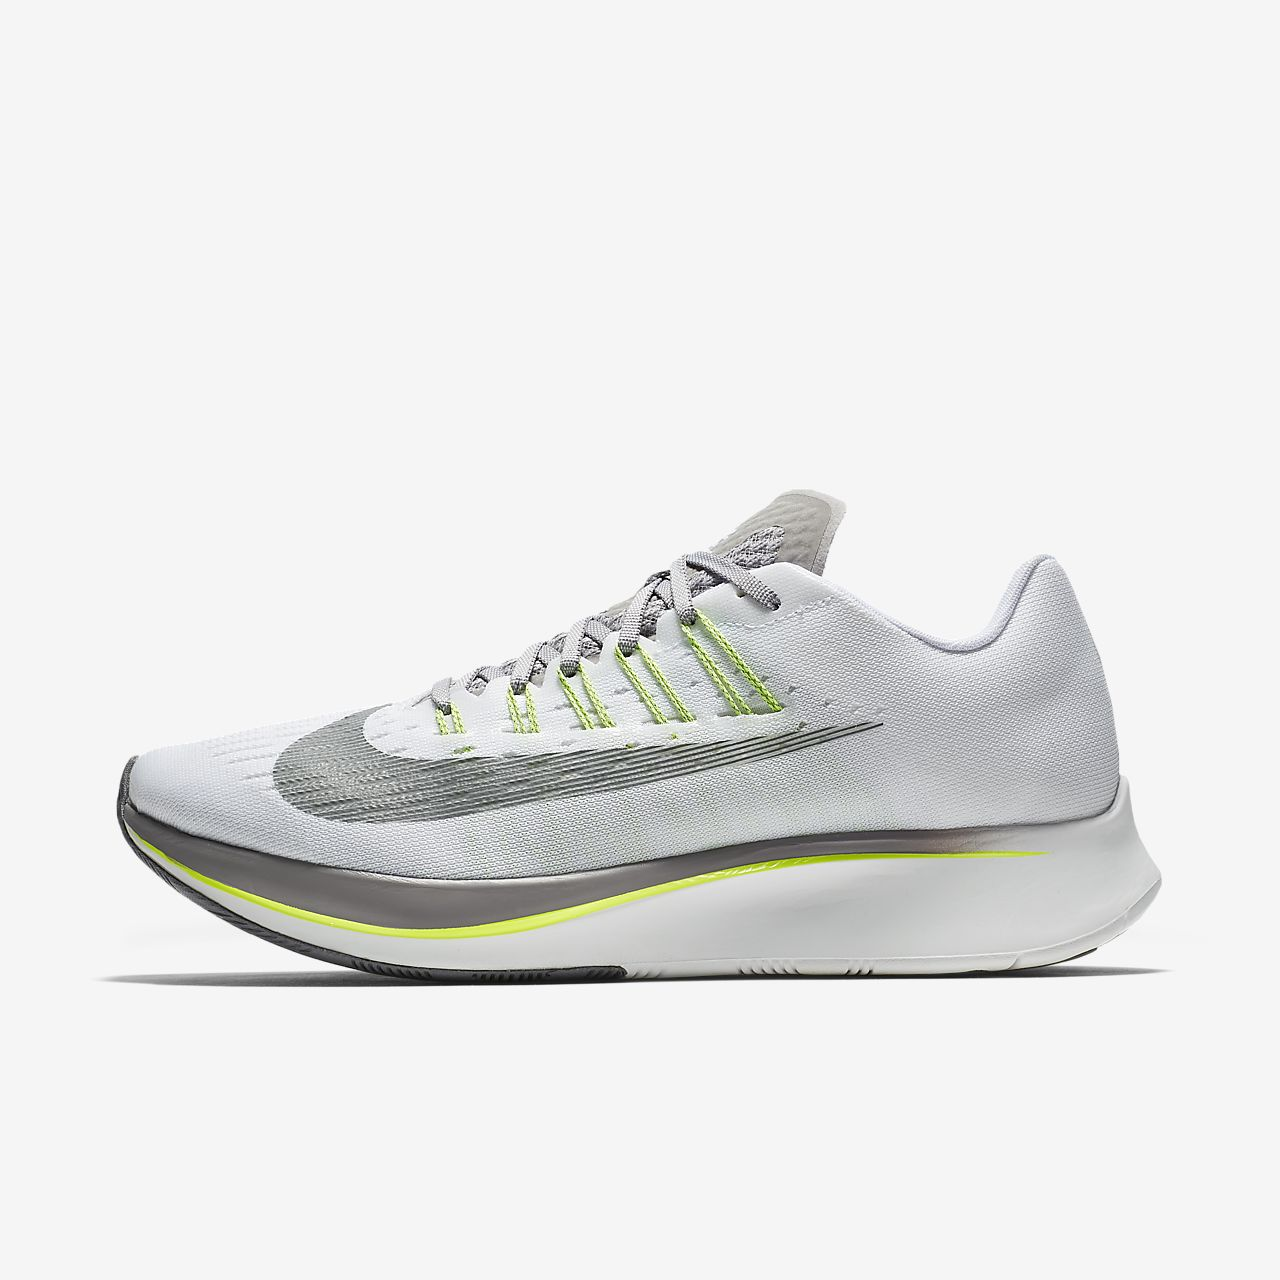 sports shoes c0dfb 0031f ... Nike Zoom Fly Men s Running Shoe